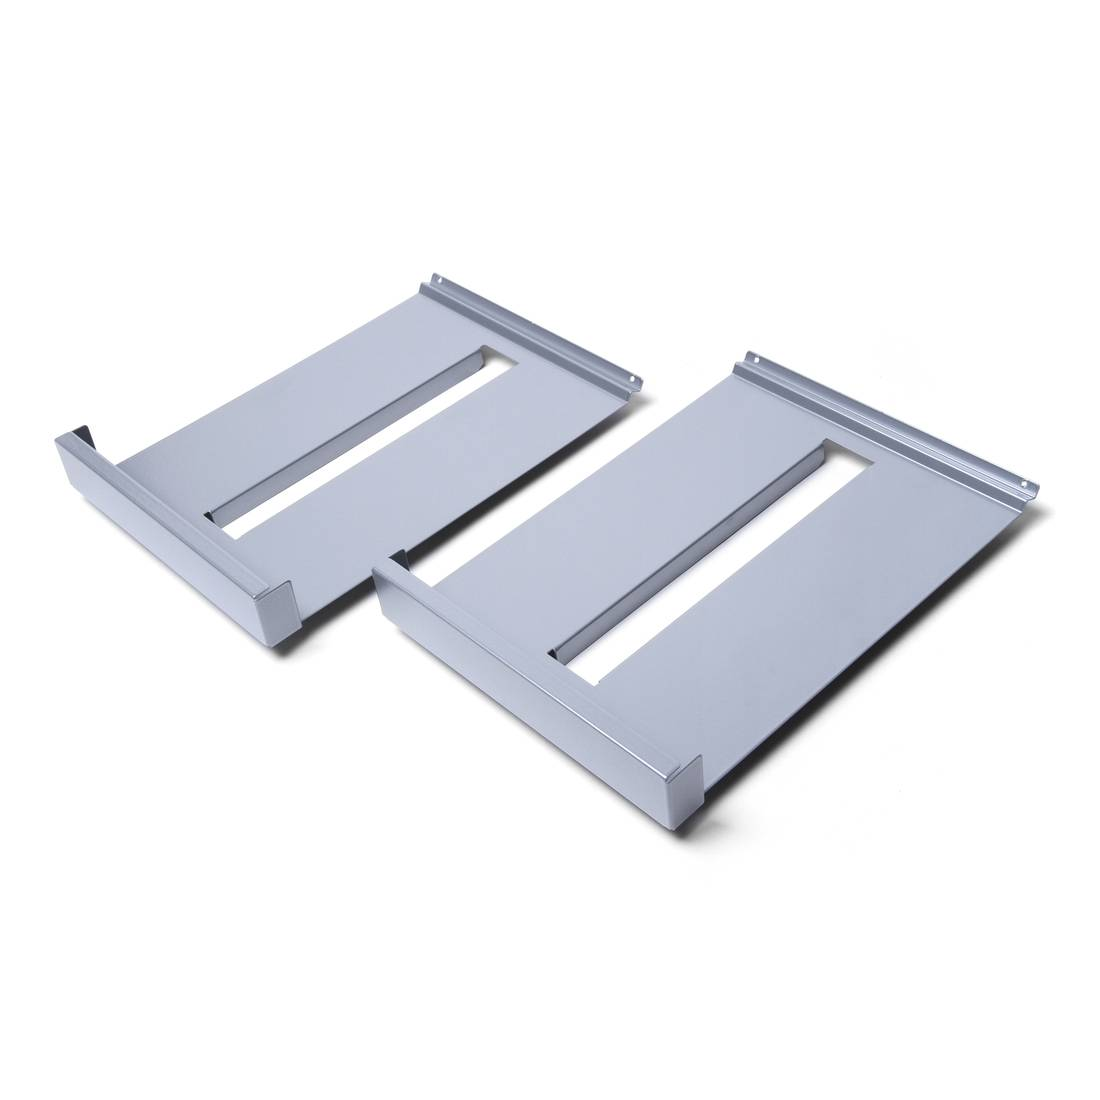 Set of metal shelves for BRT leaflet holder exhibition and wall-mounted BRW leaflet rack - 2 pieces